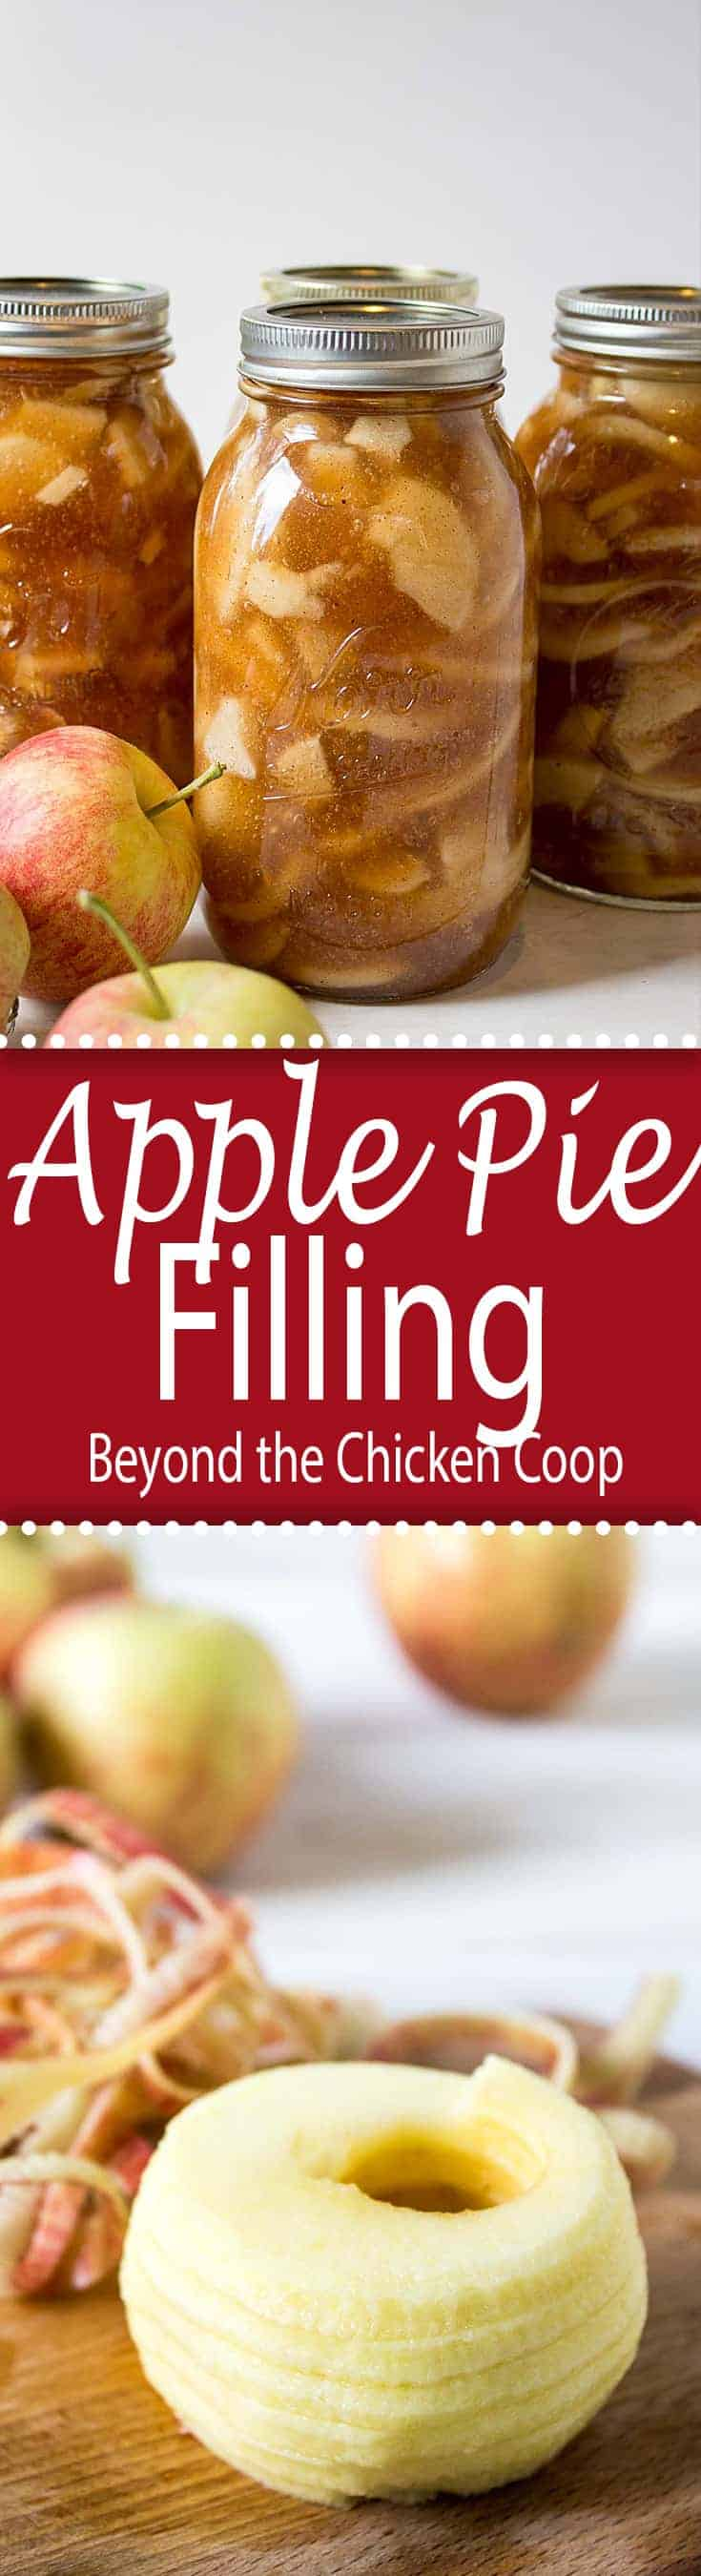 Can your own apple pie filling. This homemade pie filling is ready whenever you need it to make a delicious apple pie or apple cobbler!